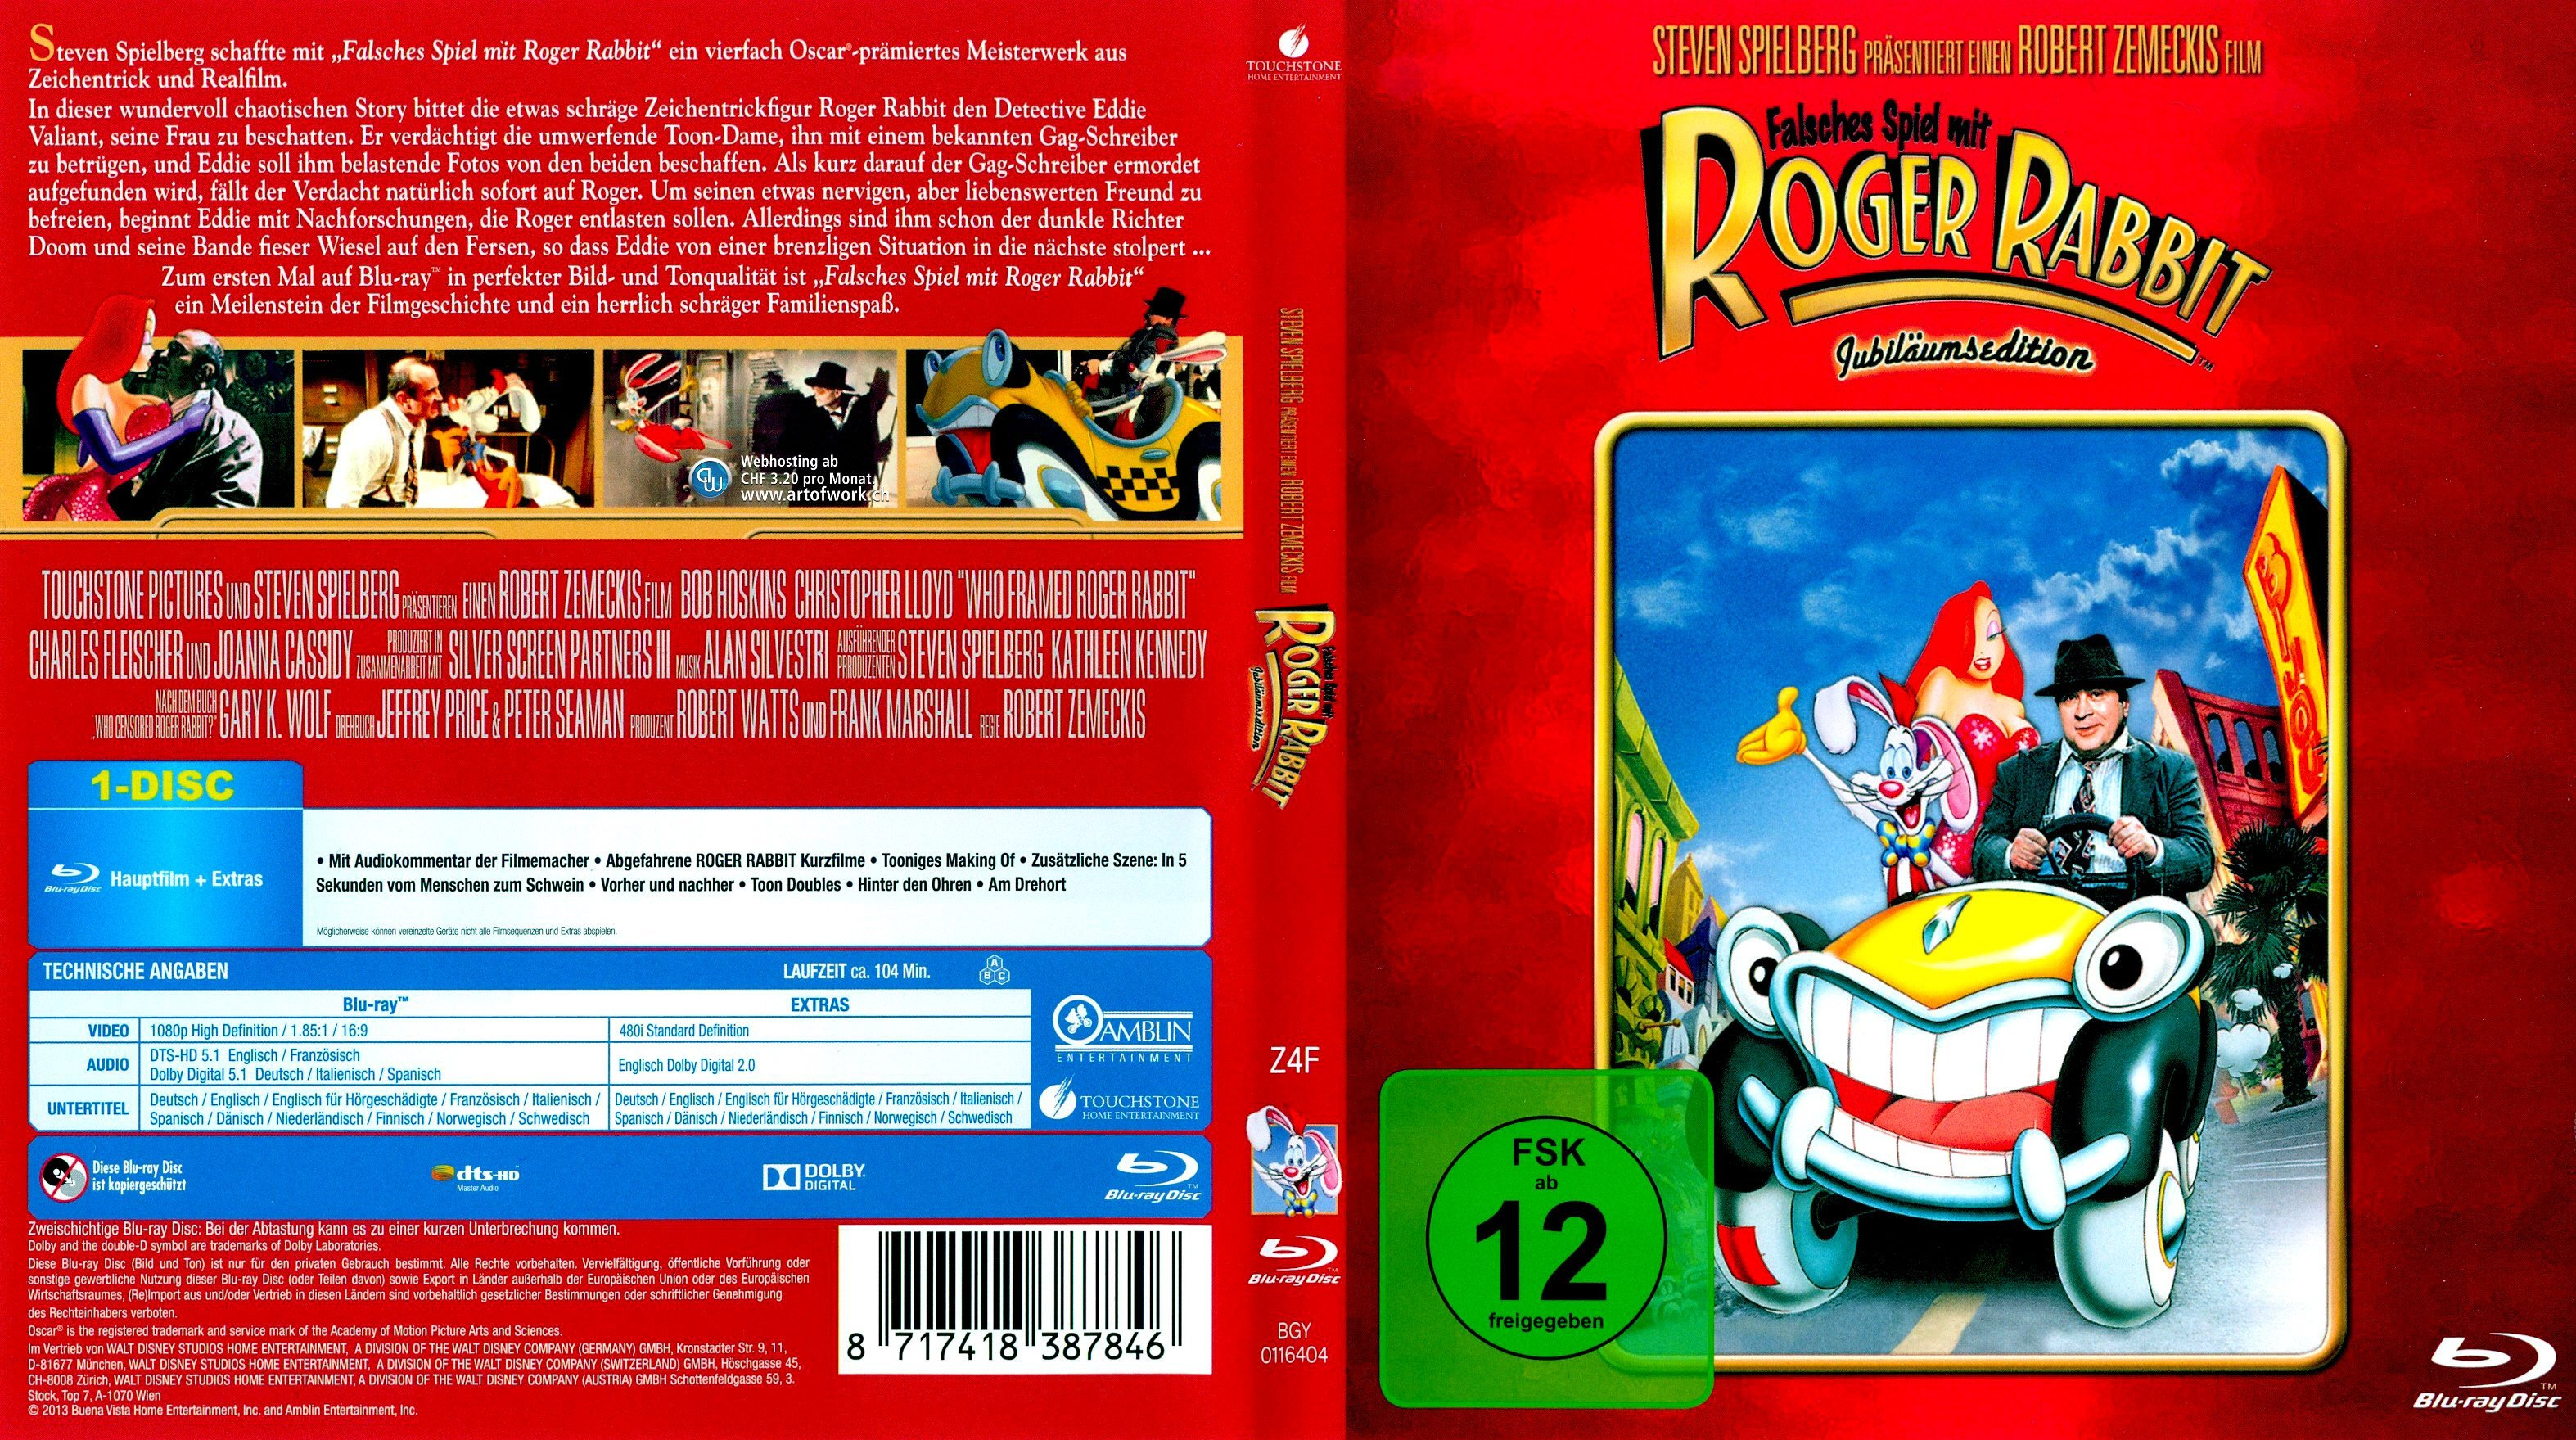 Falsches Spiel mit Roger Rabbit german blu ray cover | German DVD Covers